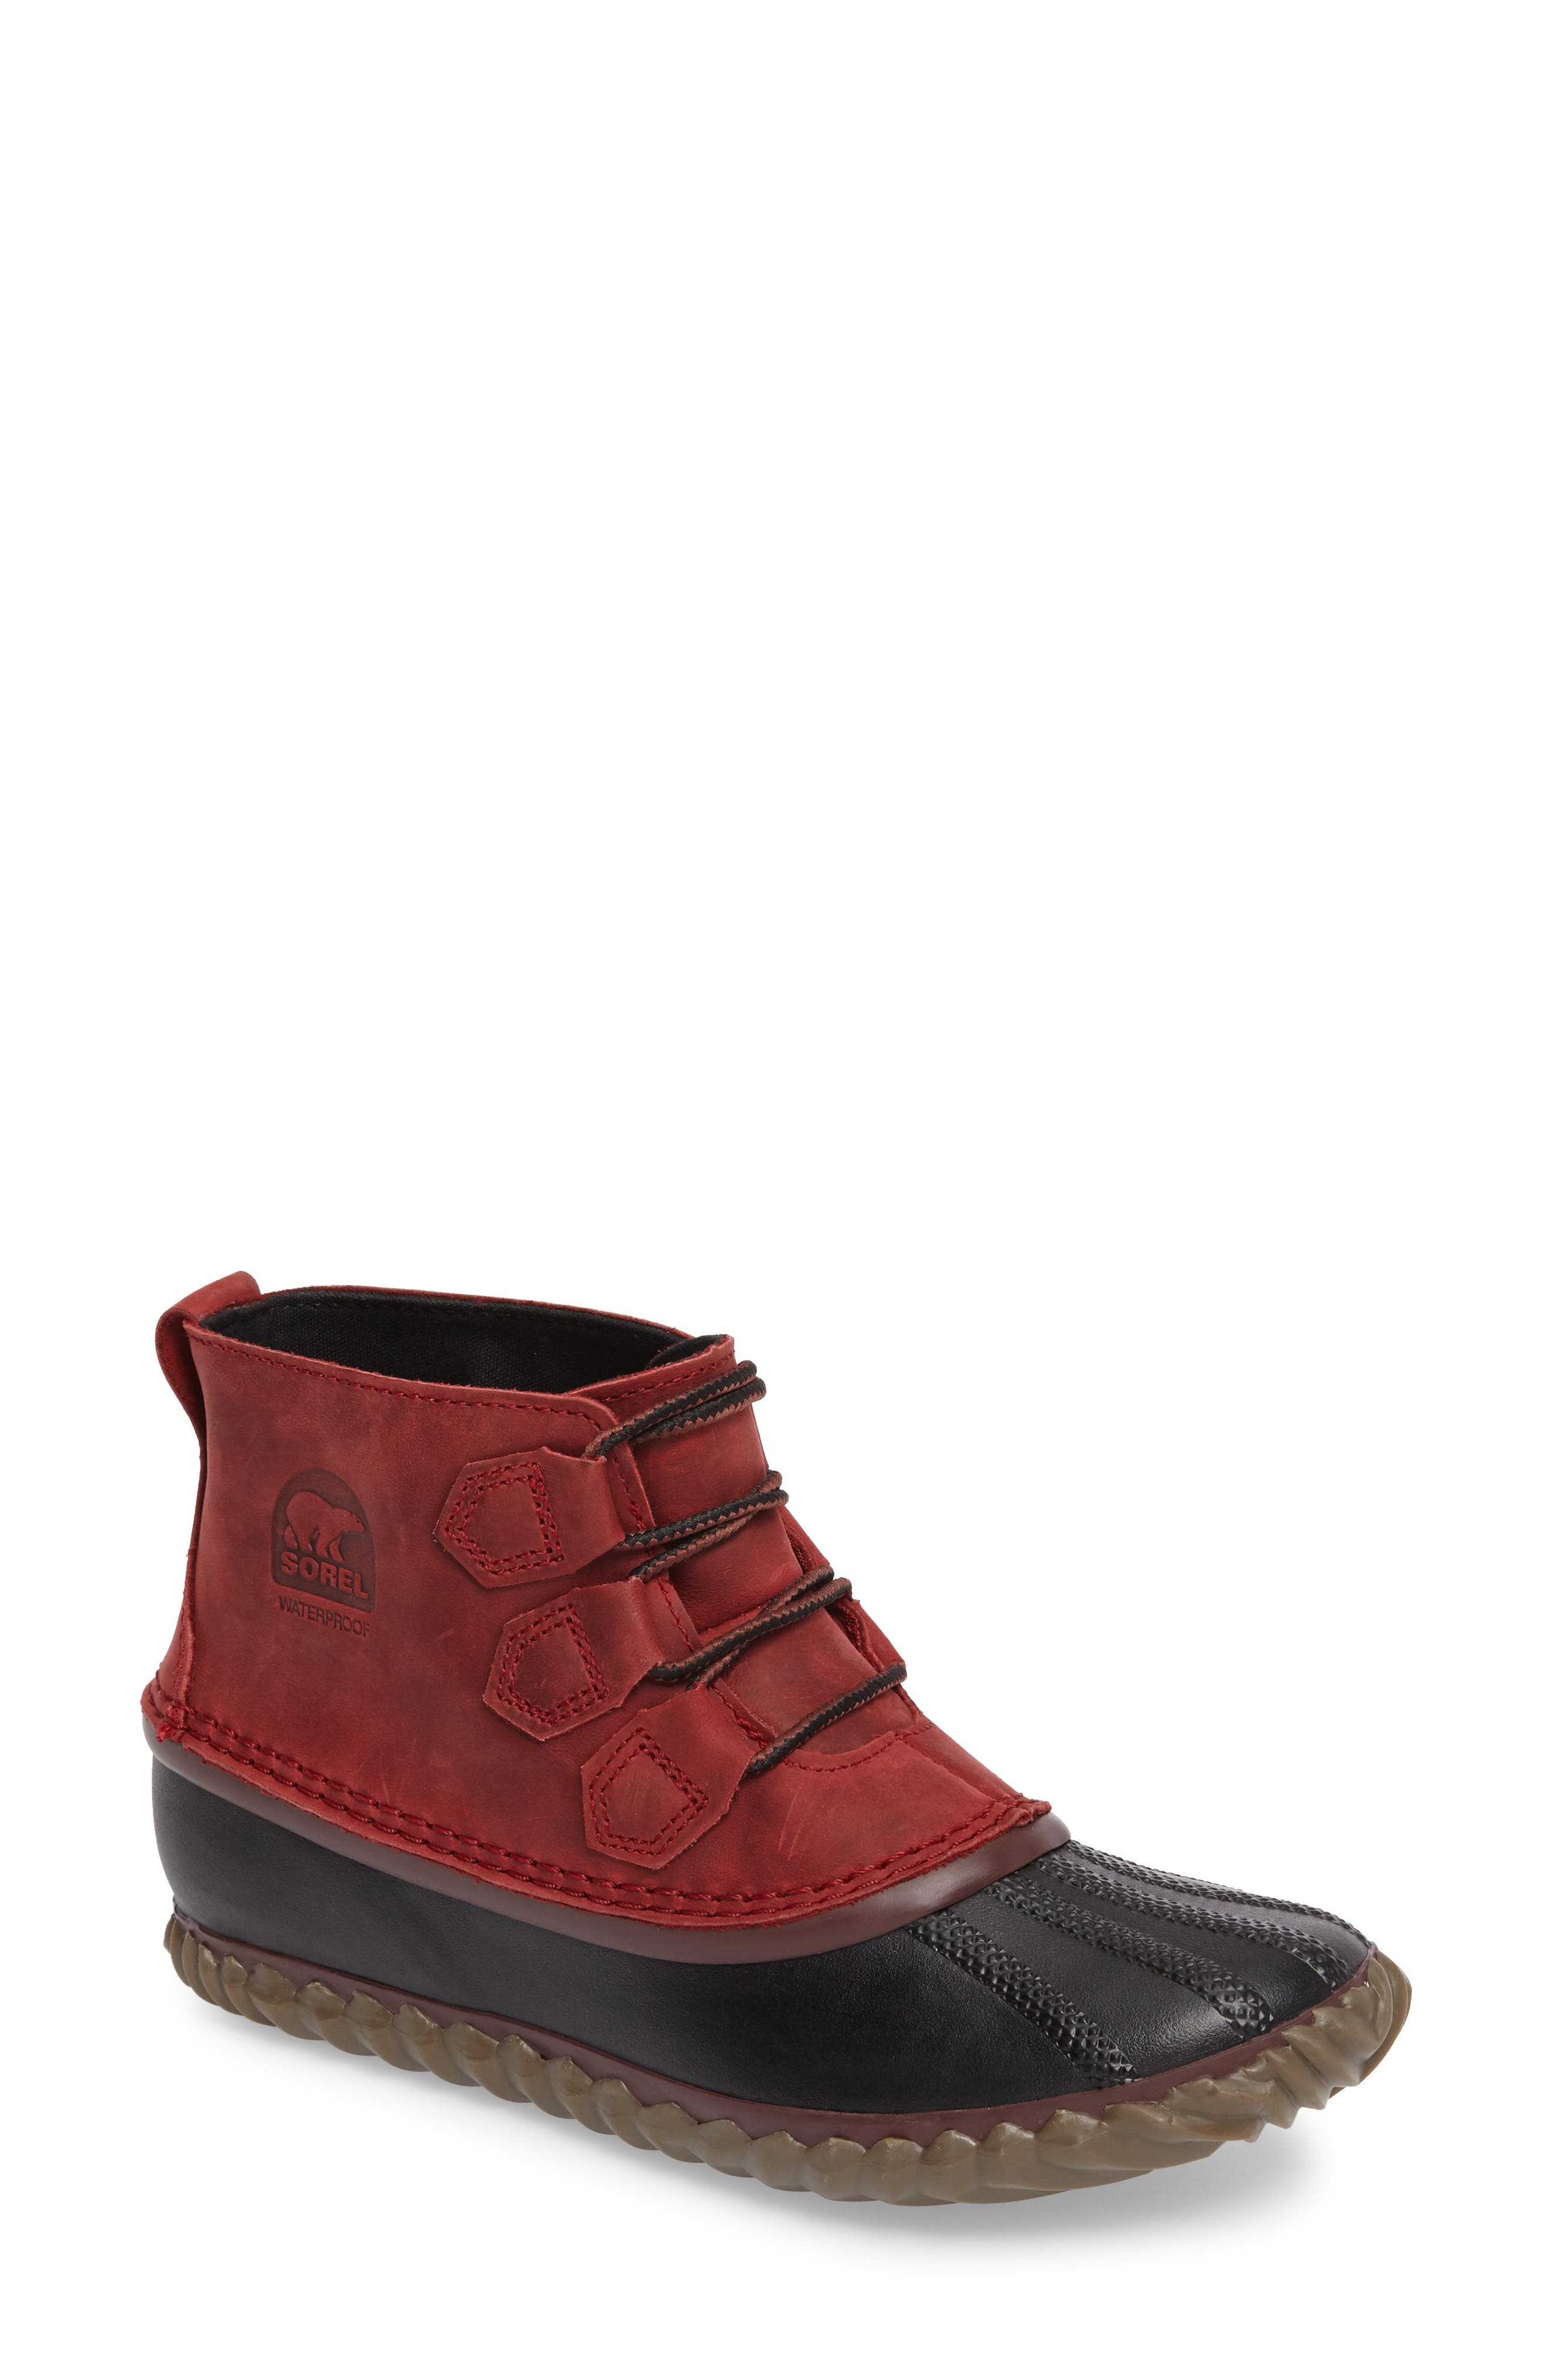 'Out N About' Leather Boot,                         Main,                         color, Red Element